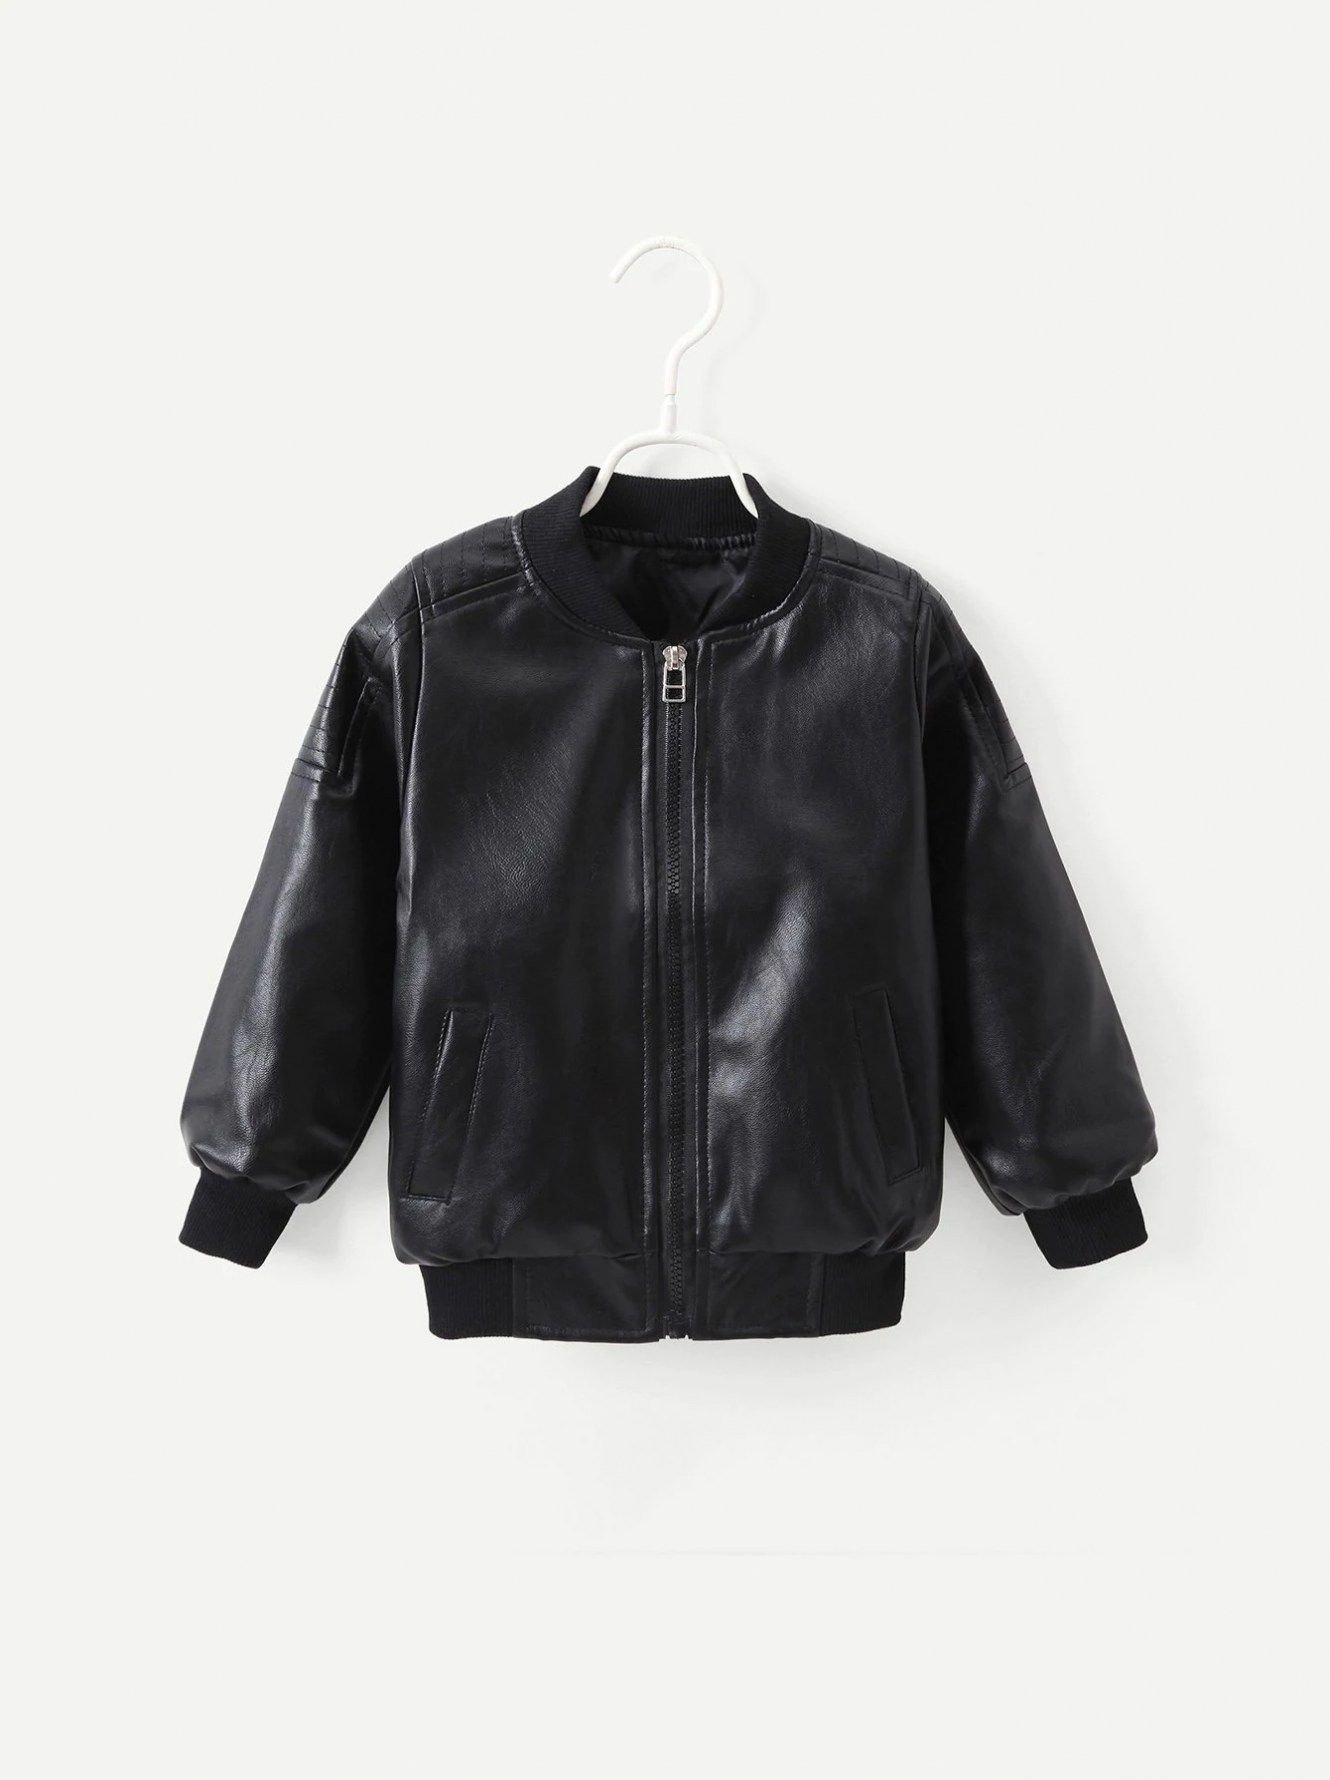 14 Toddler Boys Solid Faux Leather Jacket Leather Jacket Jackets Faux Leather Jackets [ 1780 x 1330 Pixel ]